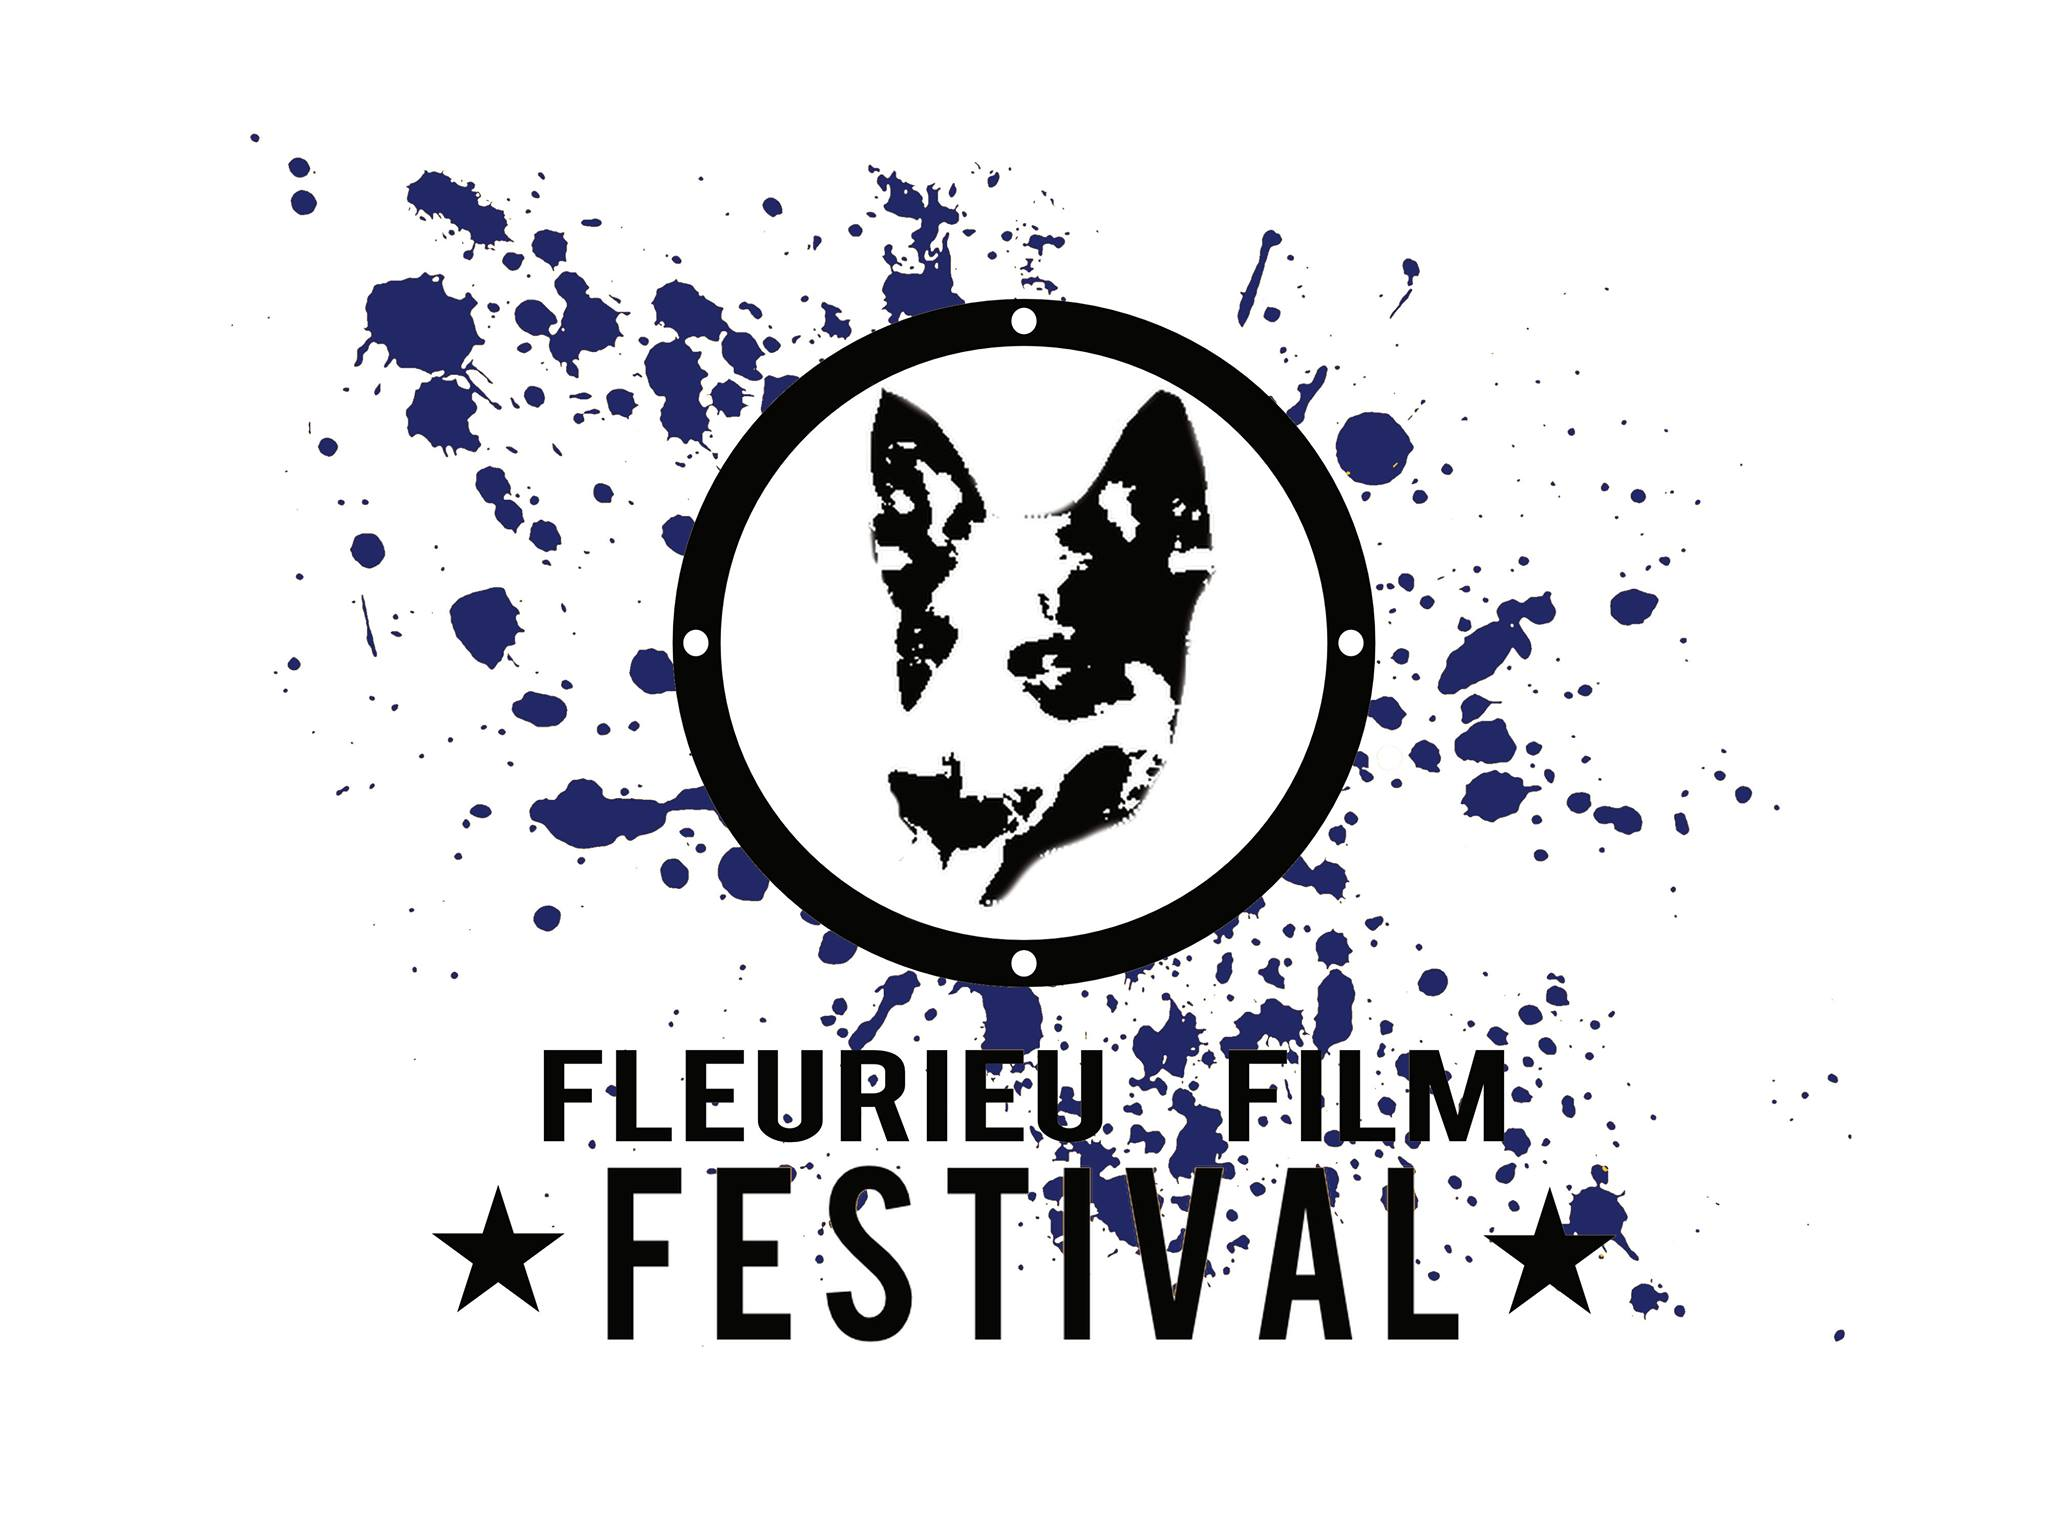 Fleurieu Film Festival - Accommodation in Surfers Paradise